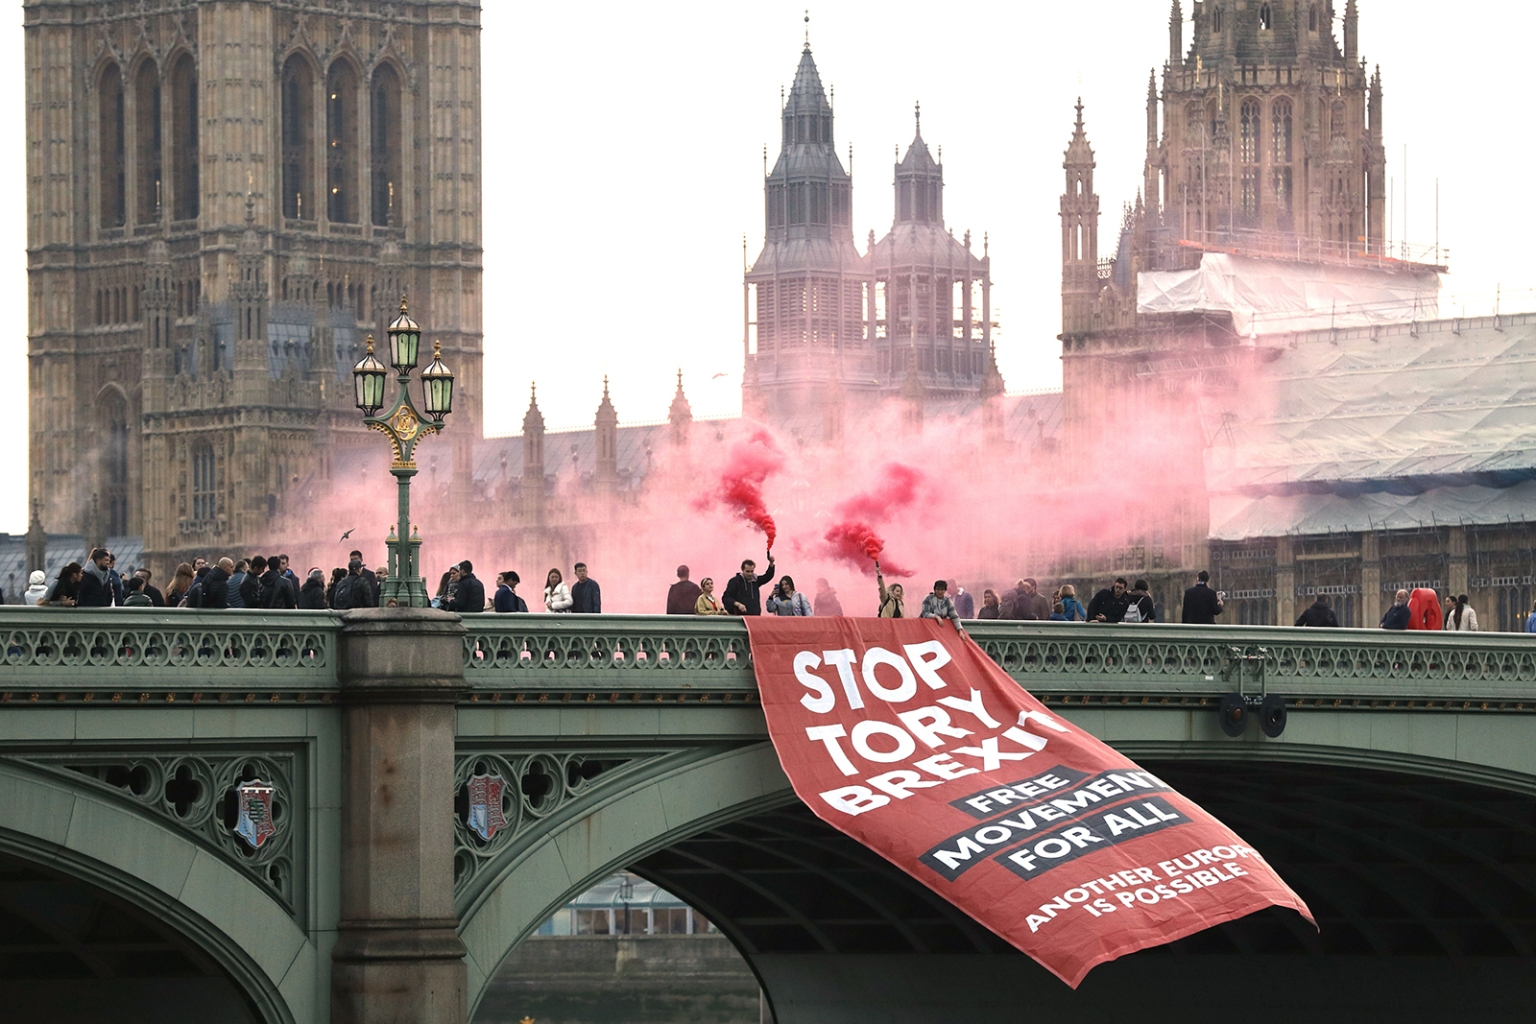 Anti-Brexit campaigners unfurl a banner on Westminster bridge in front of the Houses of Parliament in London on Nov. 15. ADRIAN DENNIS/AFP/Getty Images